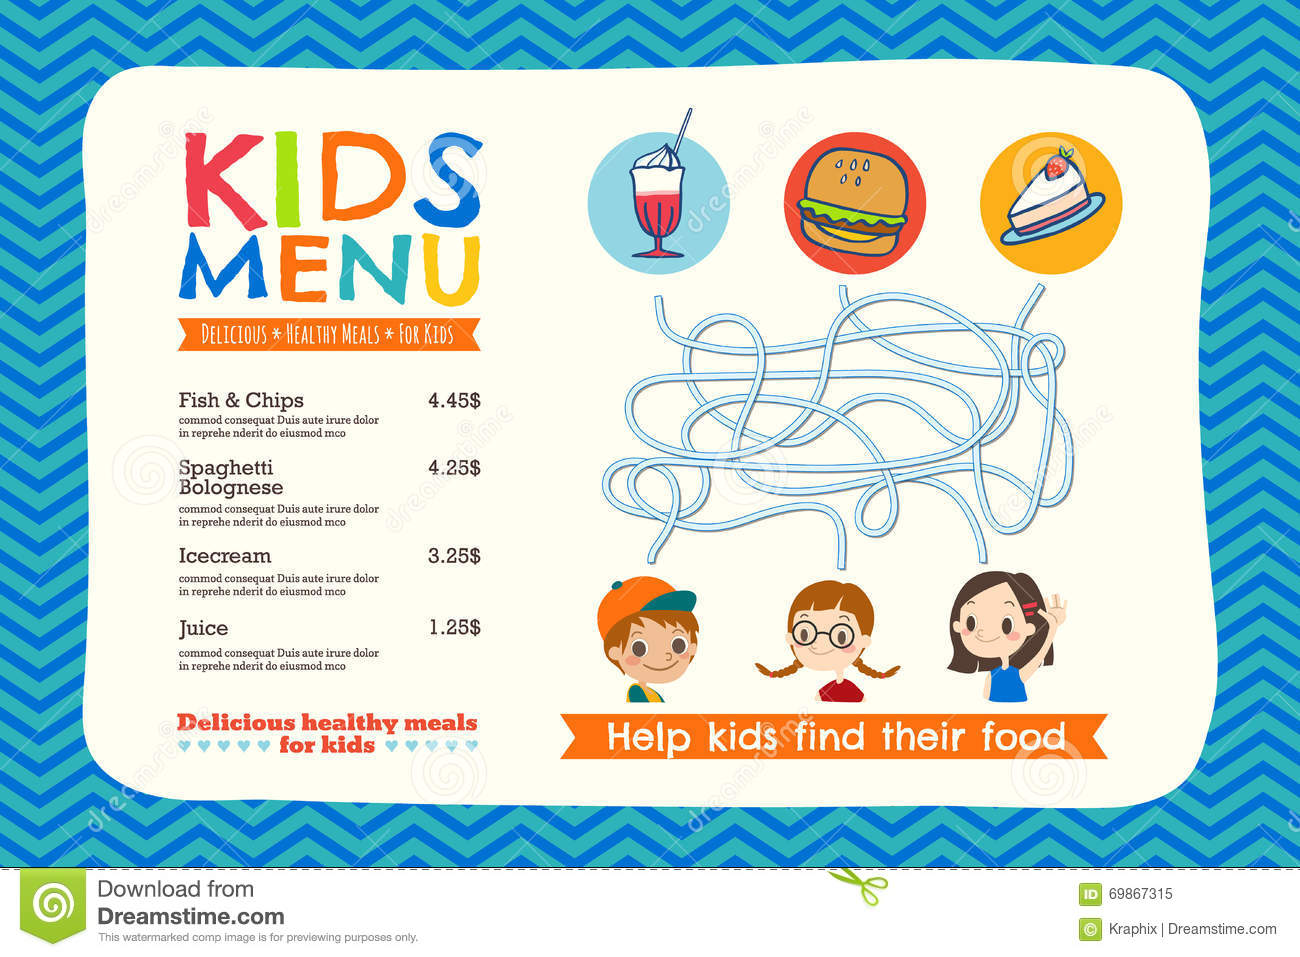 Cute Colorful Kids Meal Menu Template Vector Image 62909888 – Free Kids Menu Templates